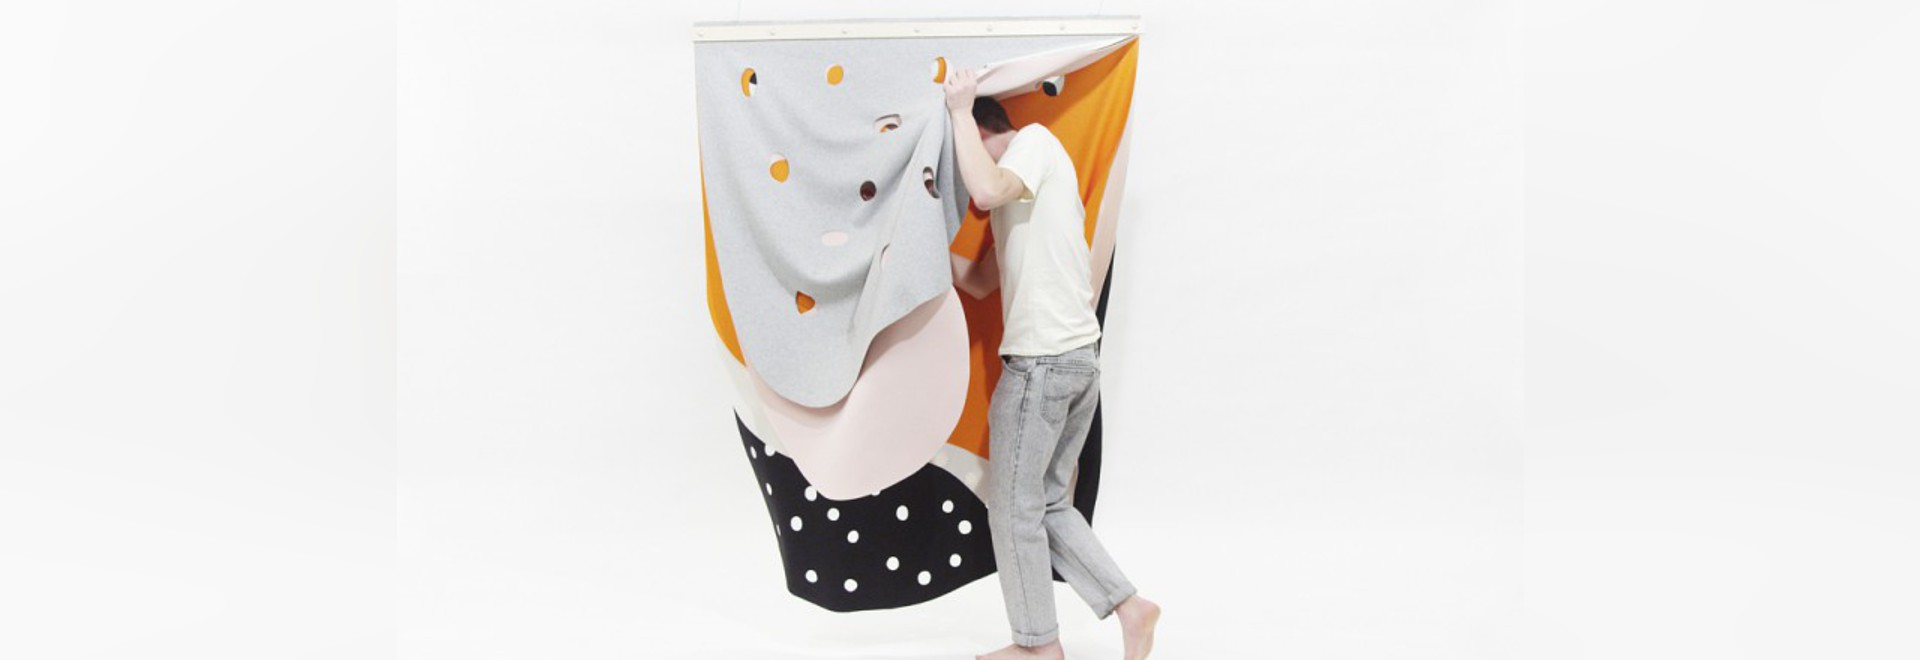 TOUCH THAT TASTE! TRANSLATES TASTE INTO TANGIBLE OBJECTS